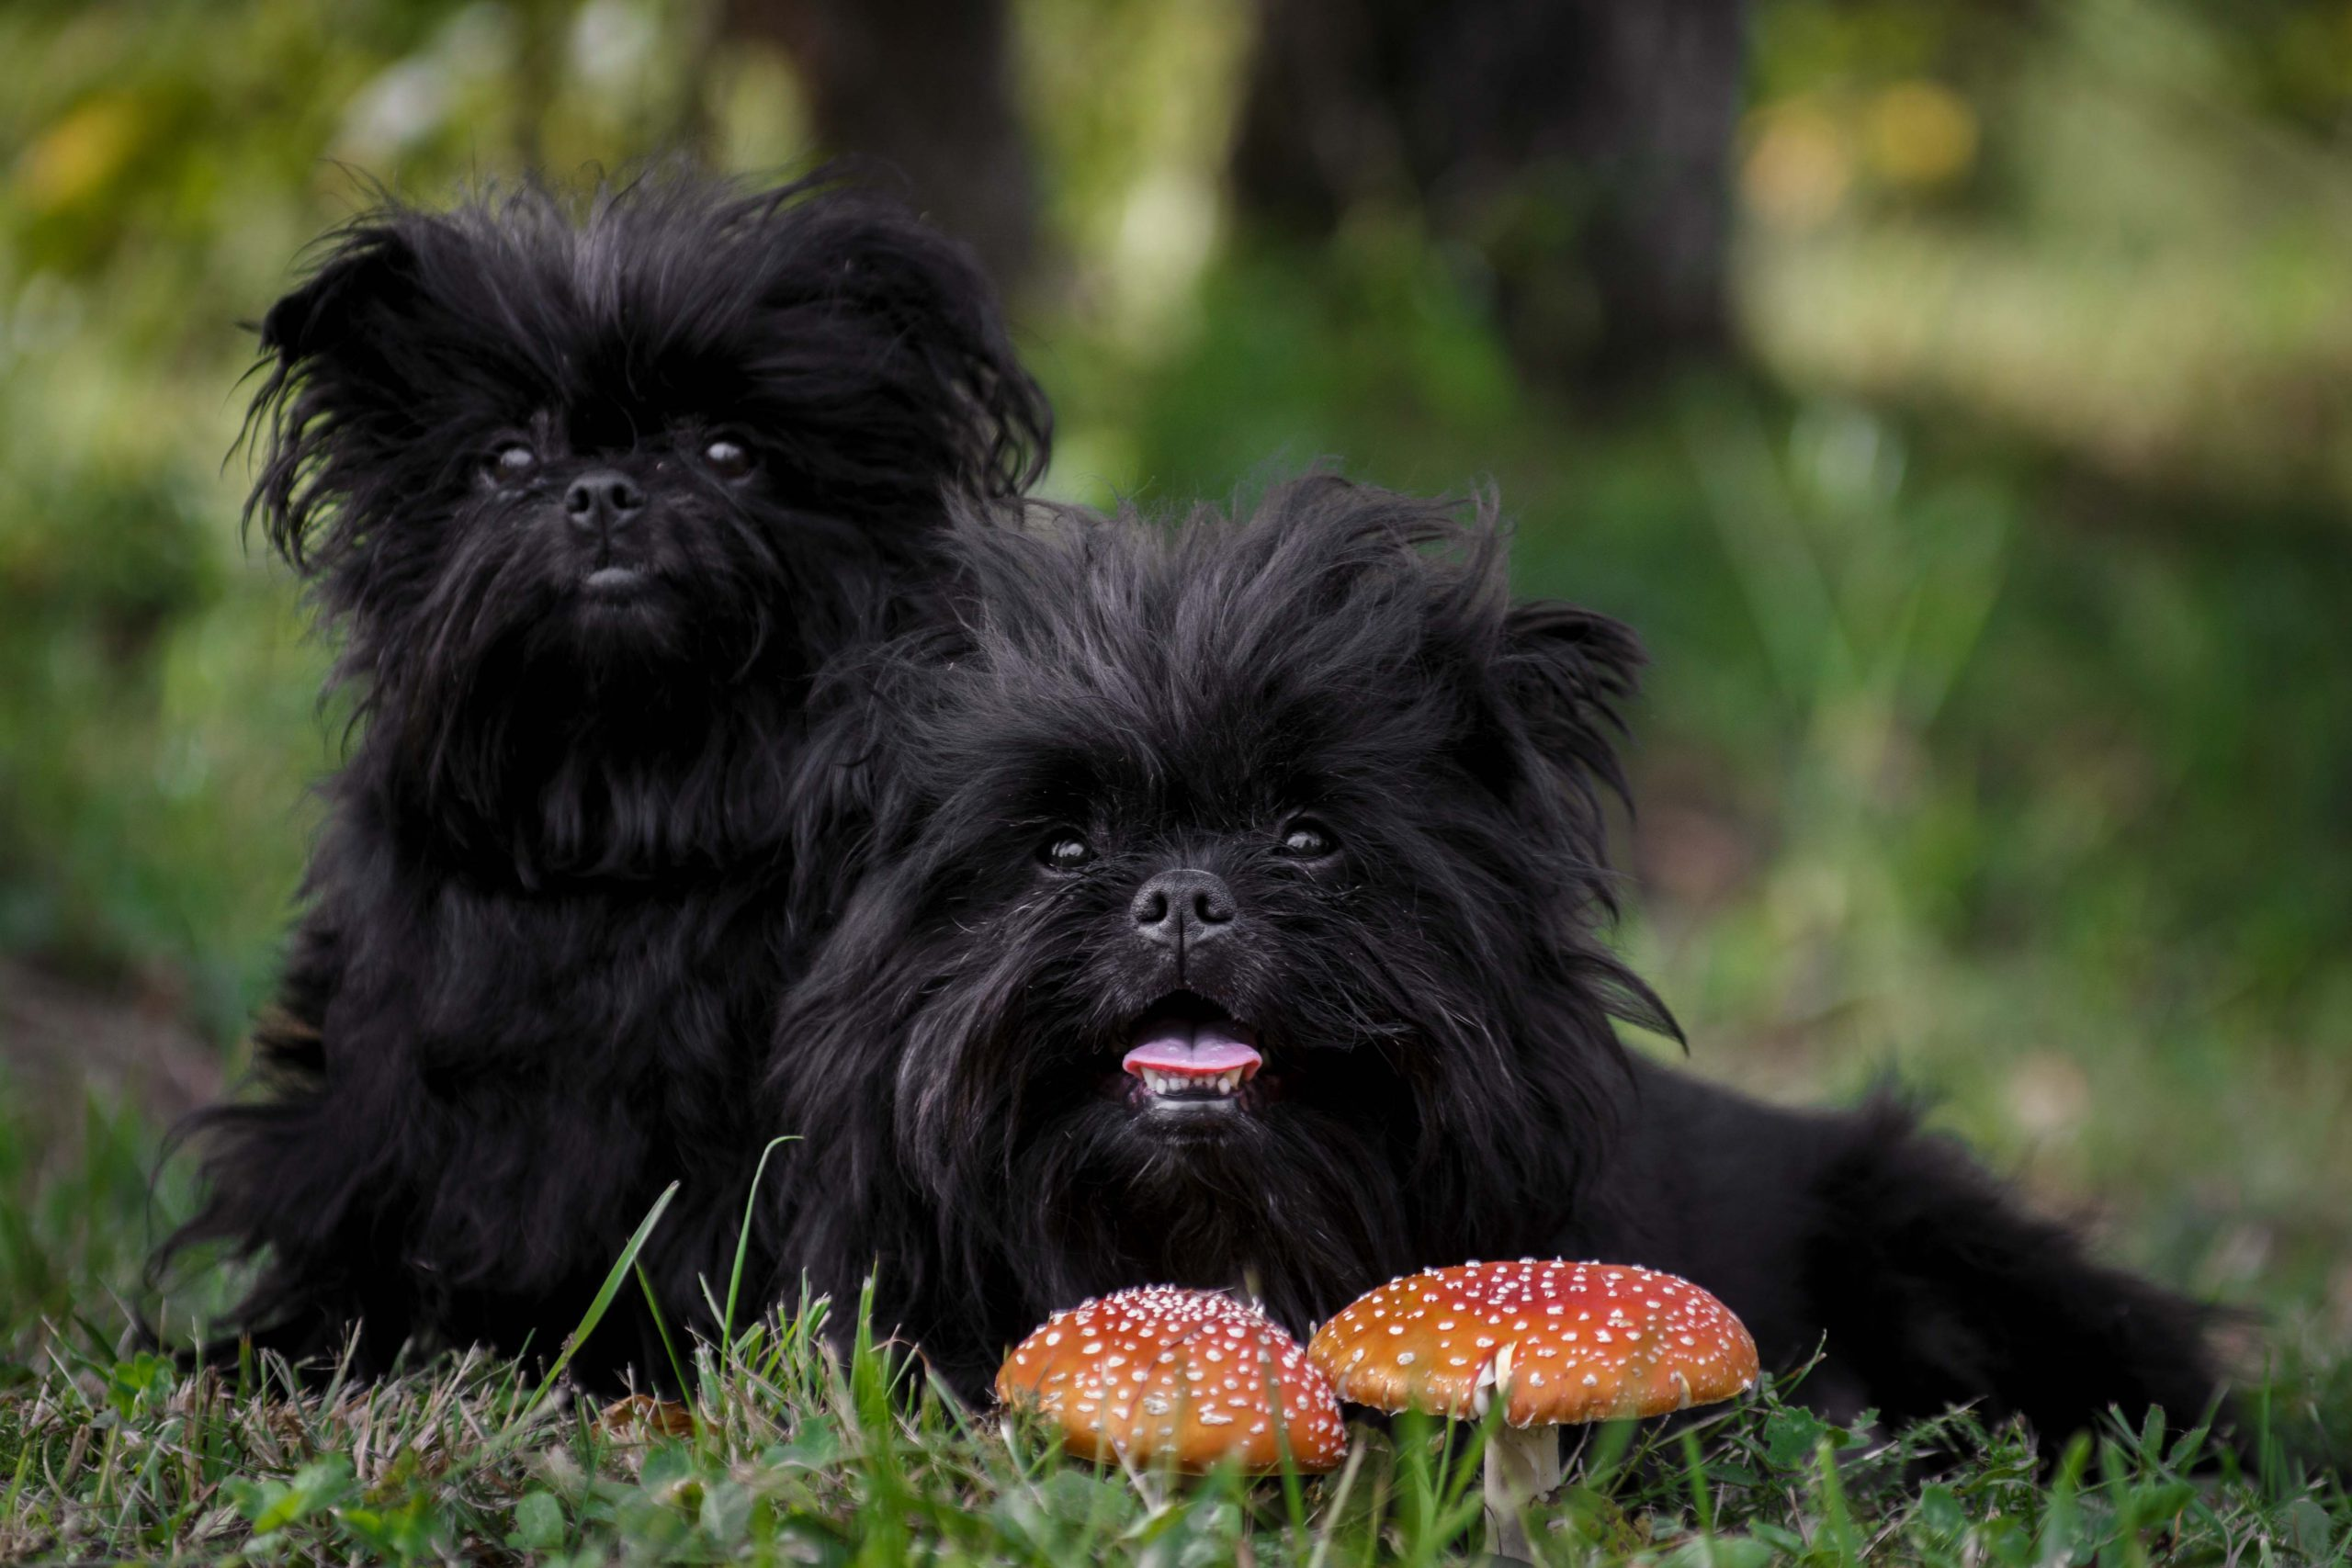 Two fluffy black Affenpinscher dogs sitting together next to decorative mushrooms.